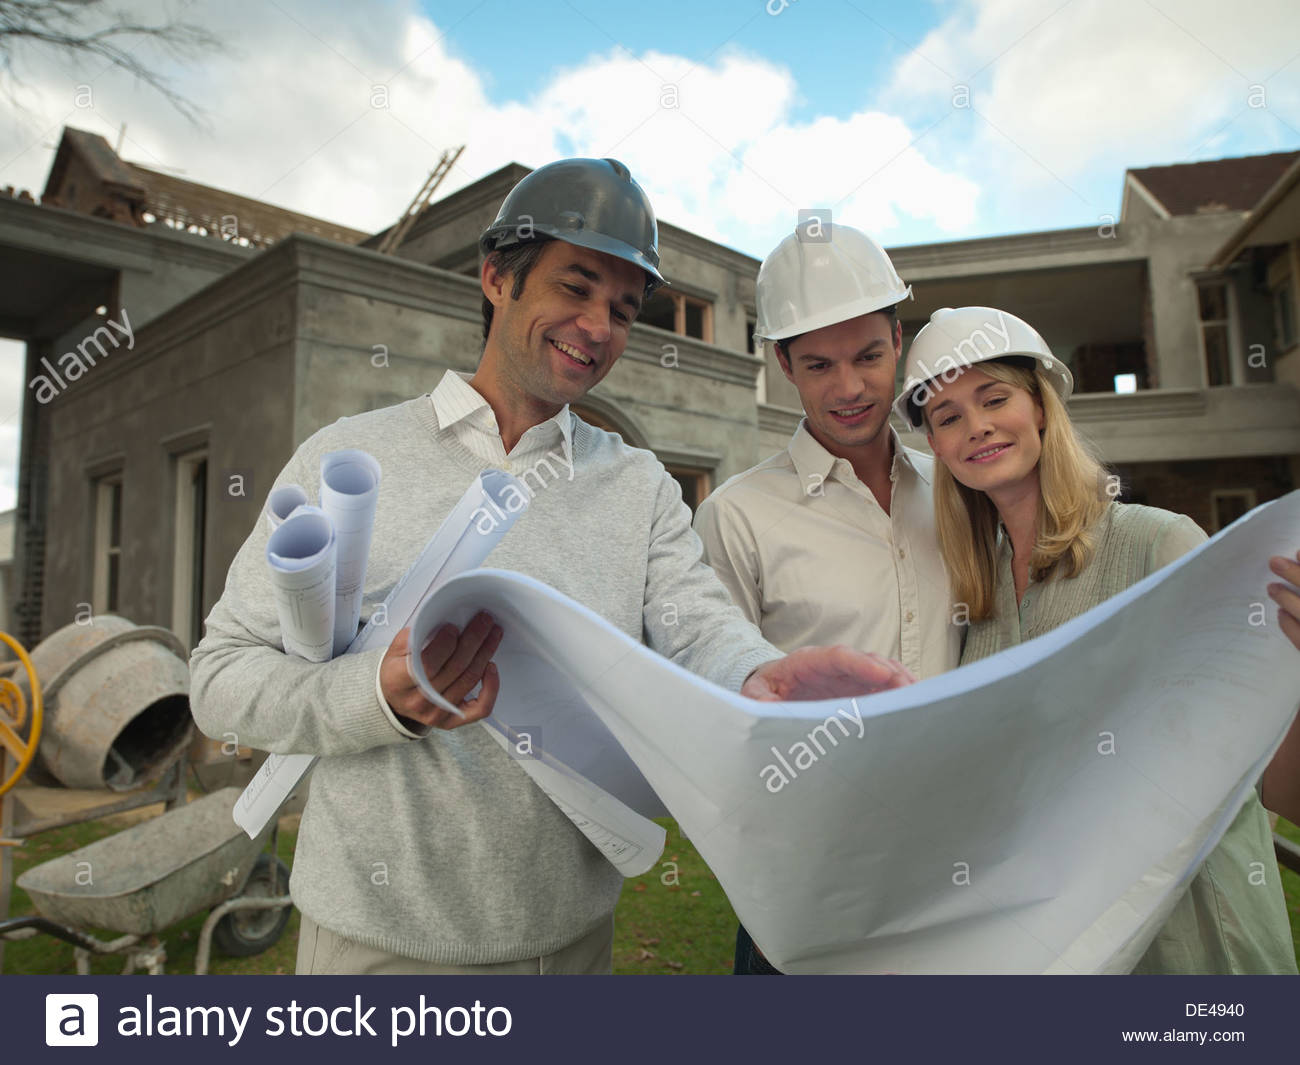 Architect and couple looking at blueprints outside house under construction - Stock Image